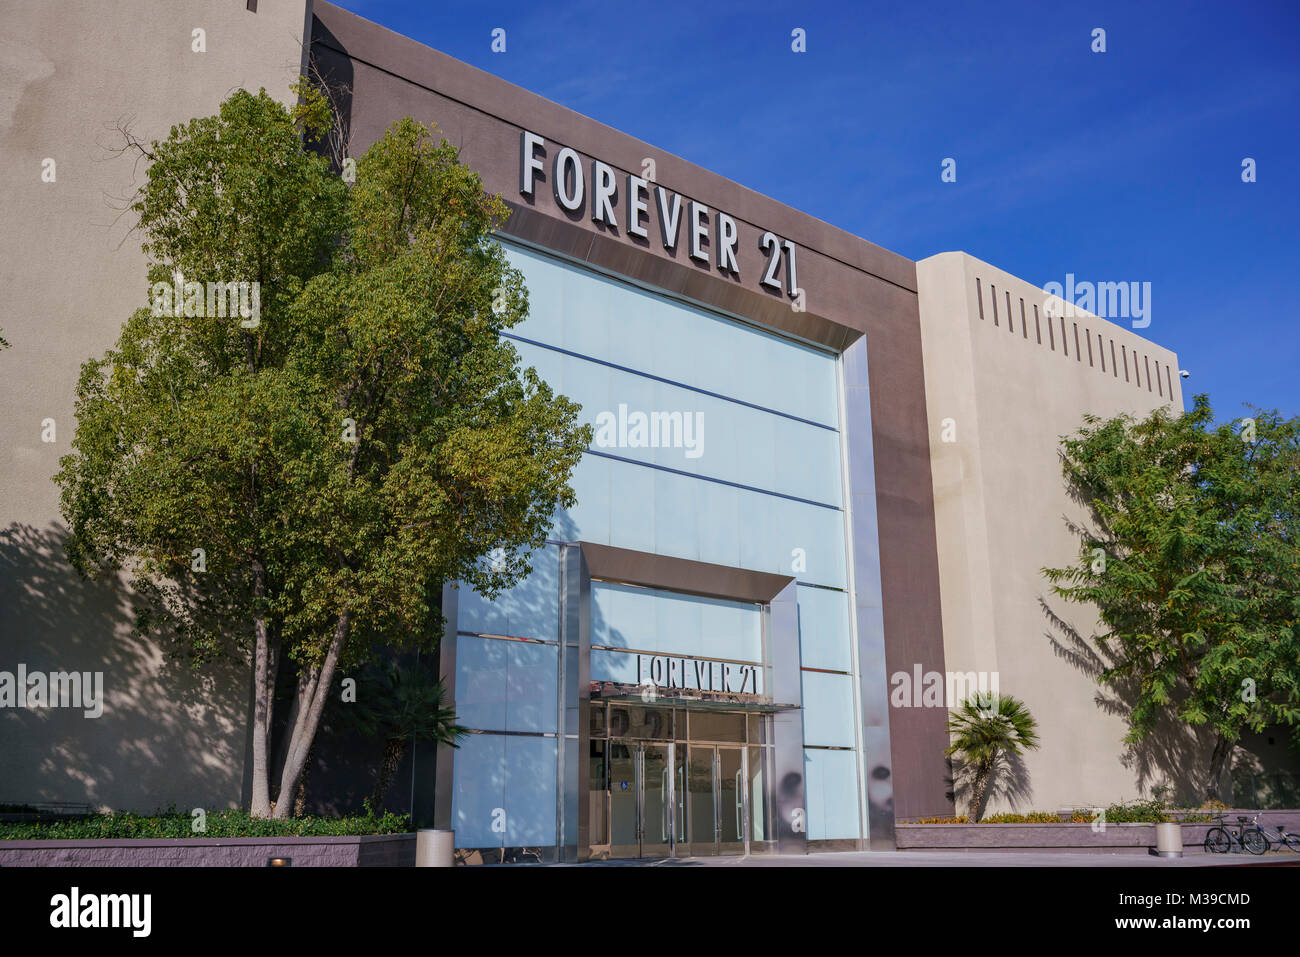 Los Angeles, JAN 7: Exterior view of the famous Forever 21 on JAN 7, 2018 at Los Angeles, California - Stock Image